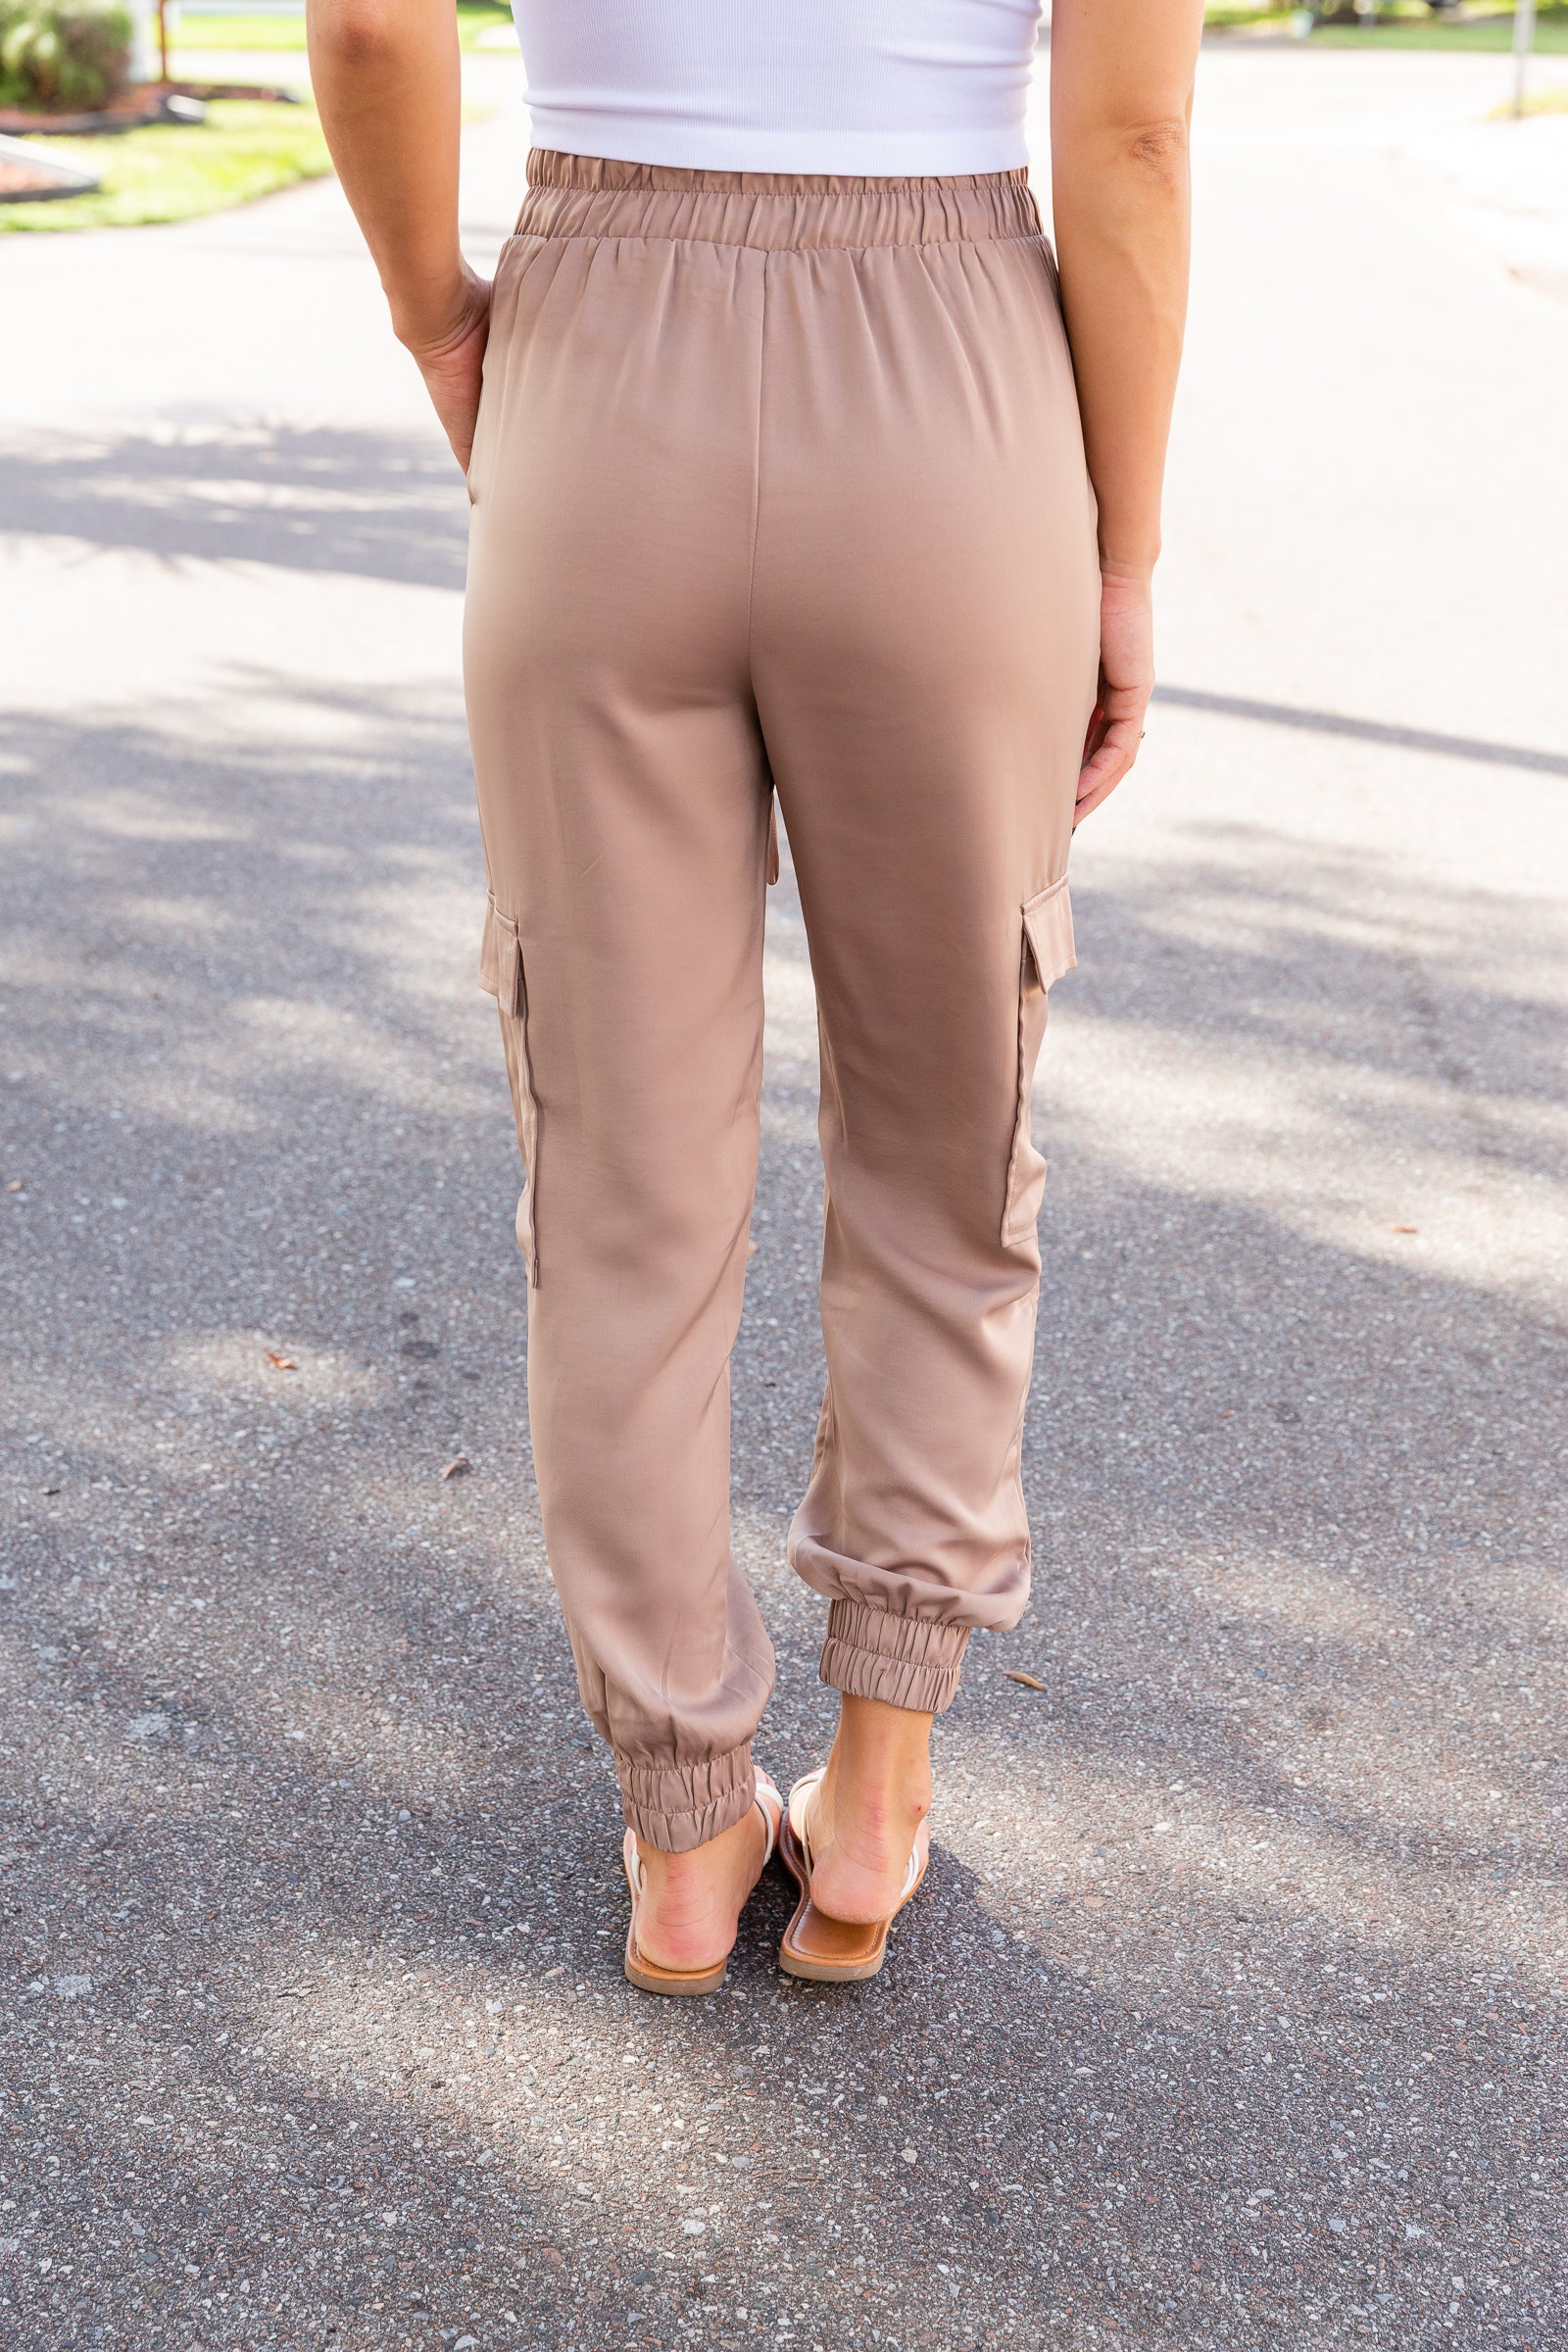 Adjustable drawstring waist leading to pockets at the side and go down into relaxed pant legs, accommodating one pocket at the side of the thigh, and meets strap details at the ankles.